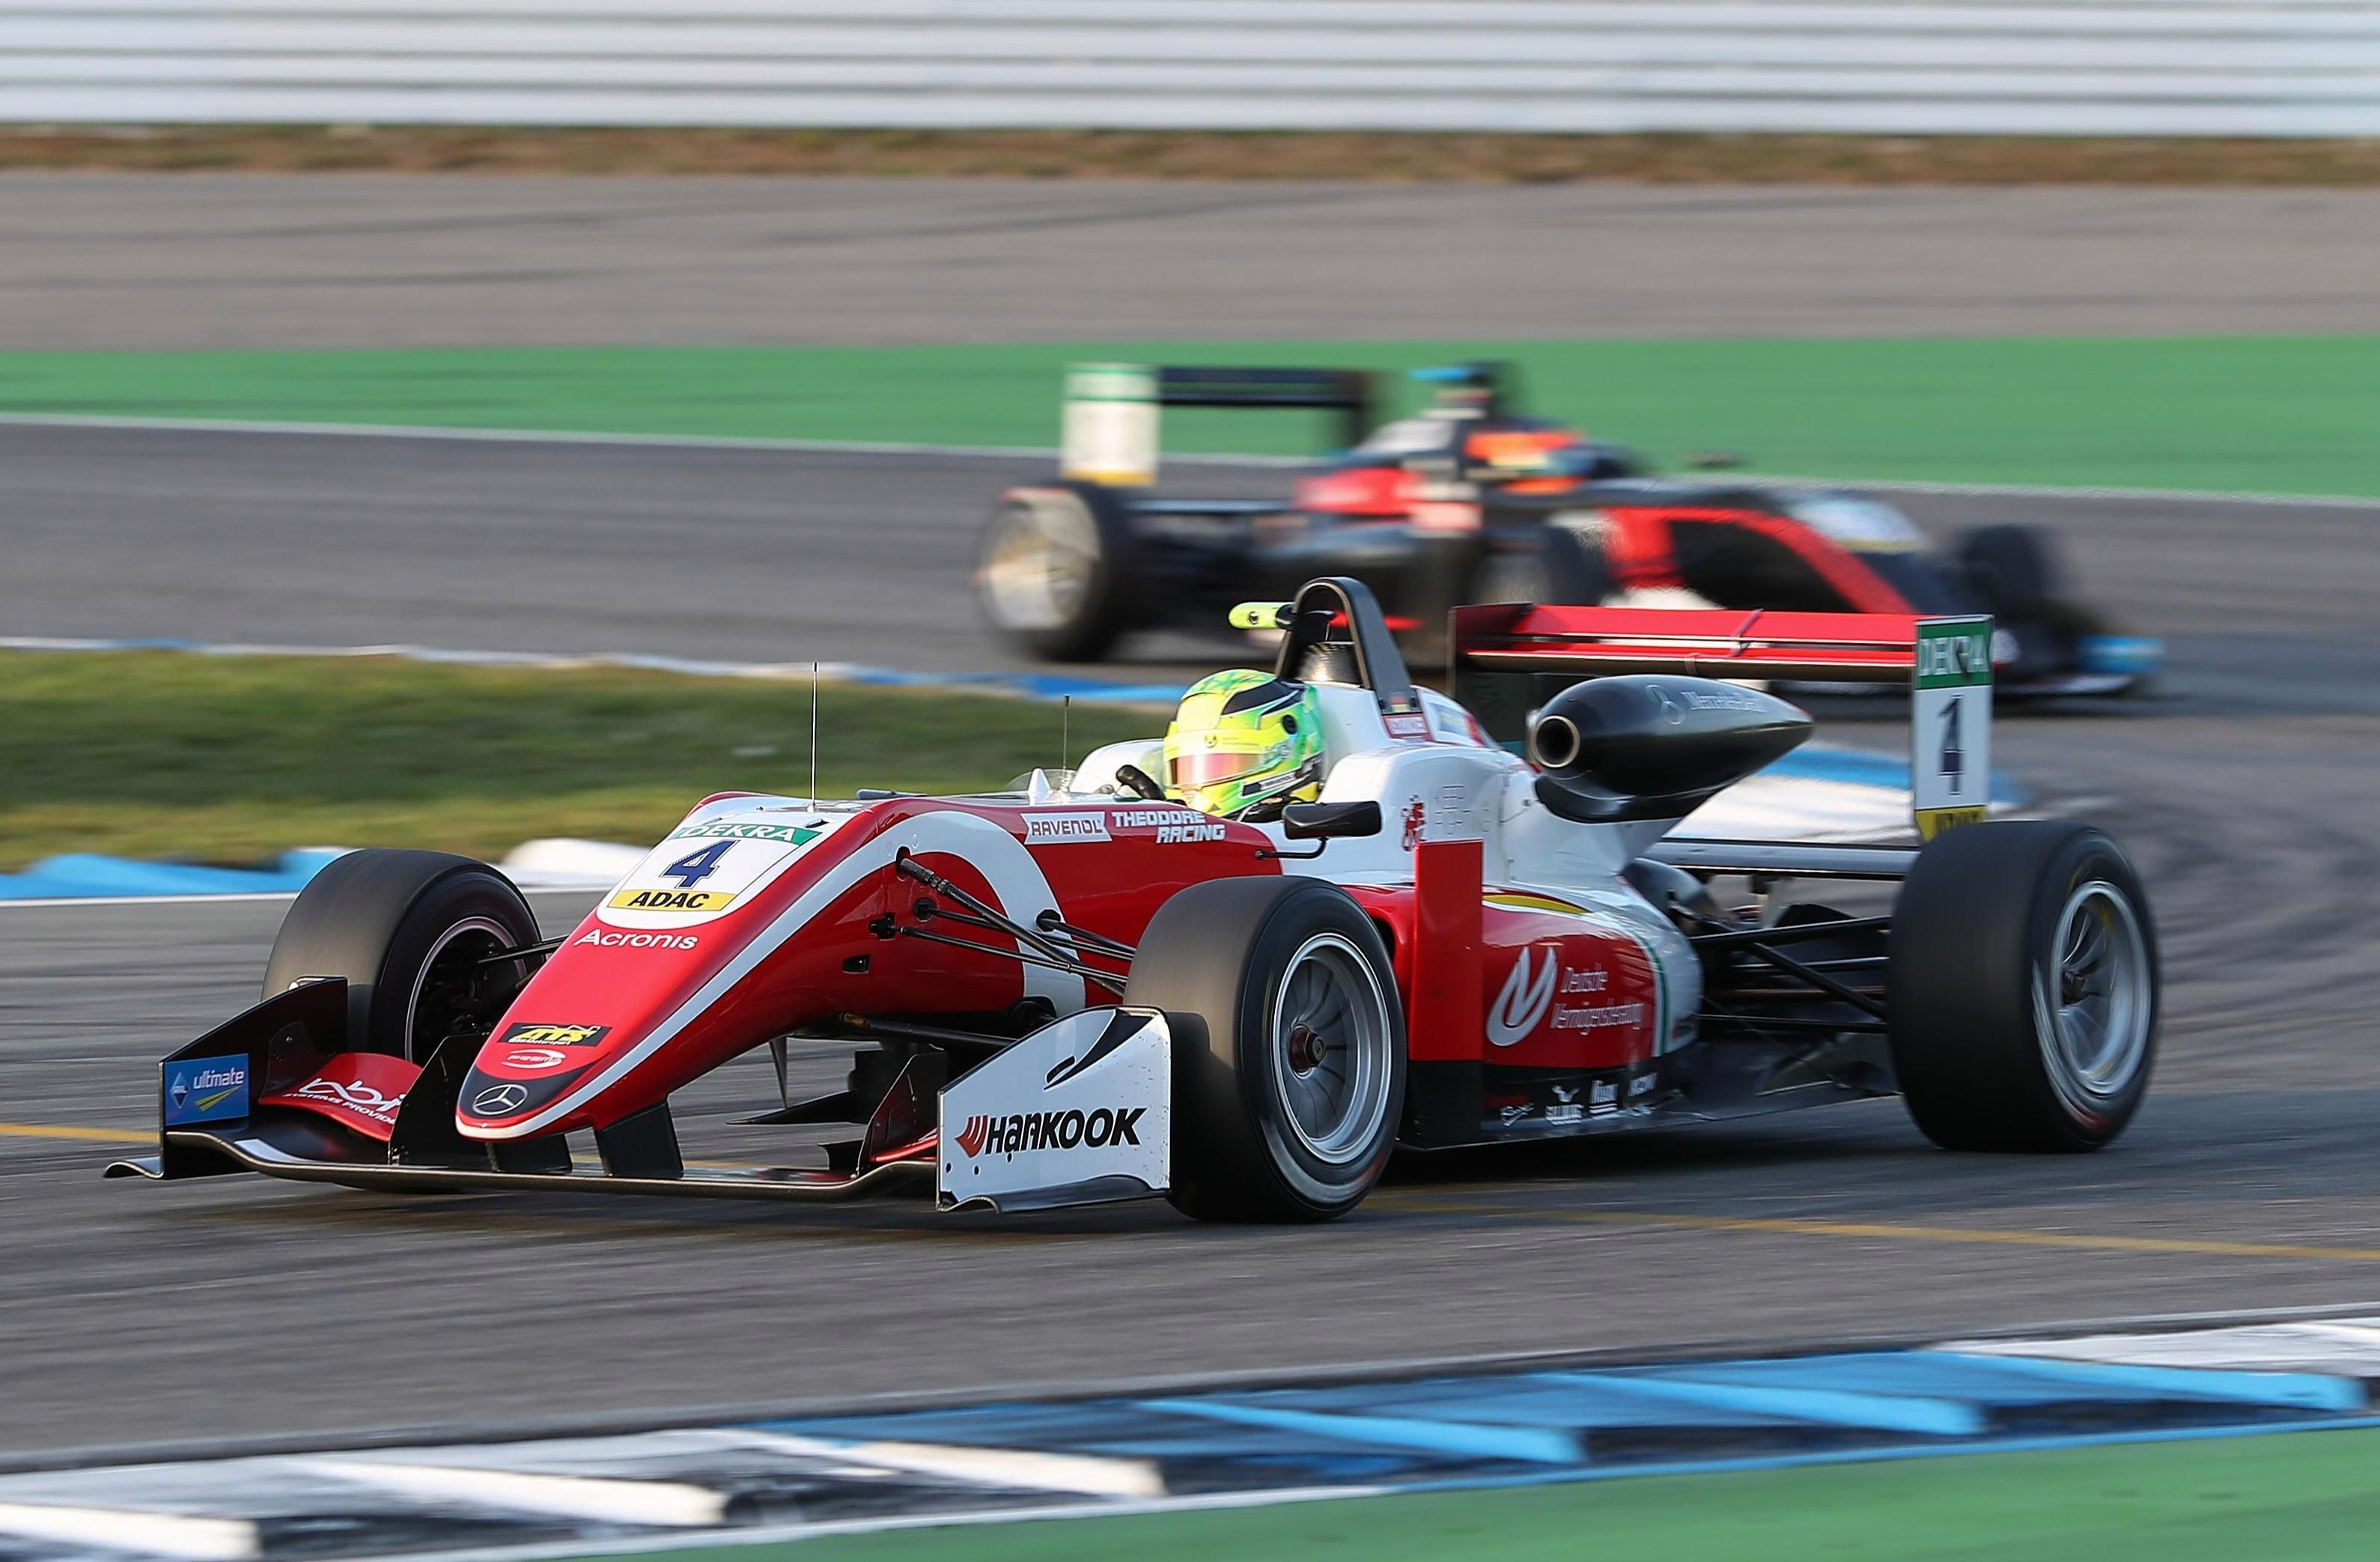 Mick Schumacher sealed his first title success with second spot in the second race at Hockenheim